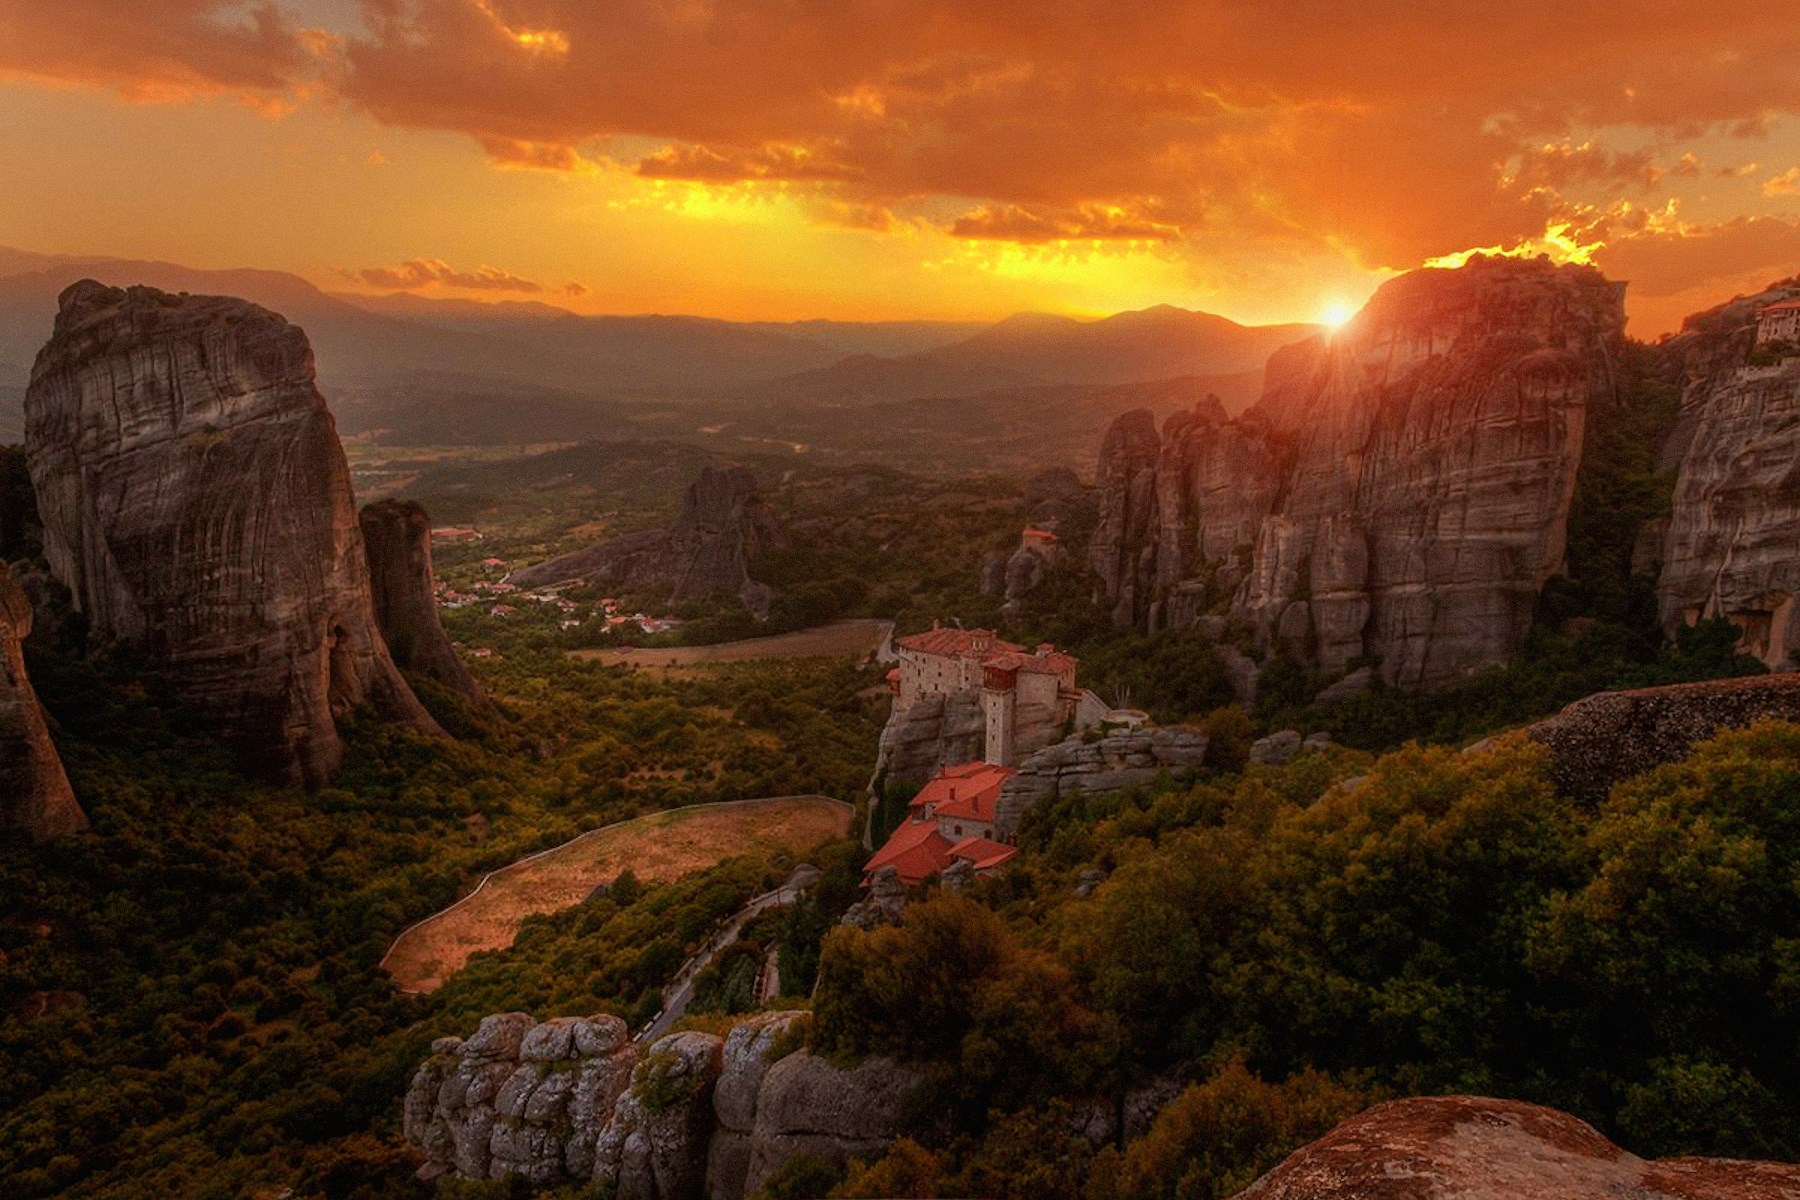 00 Aleksansdr Atoyan. Sunset in Meteora. 2015